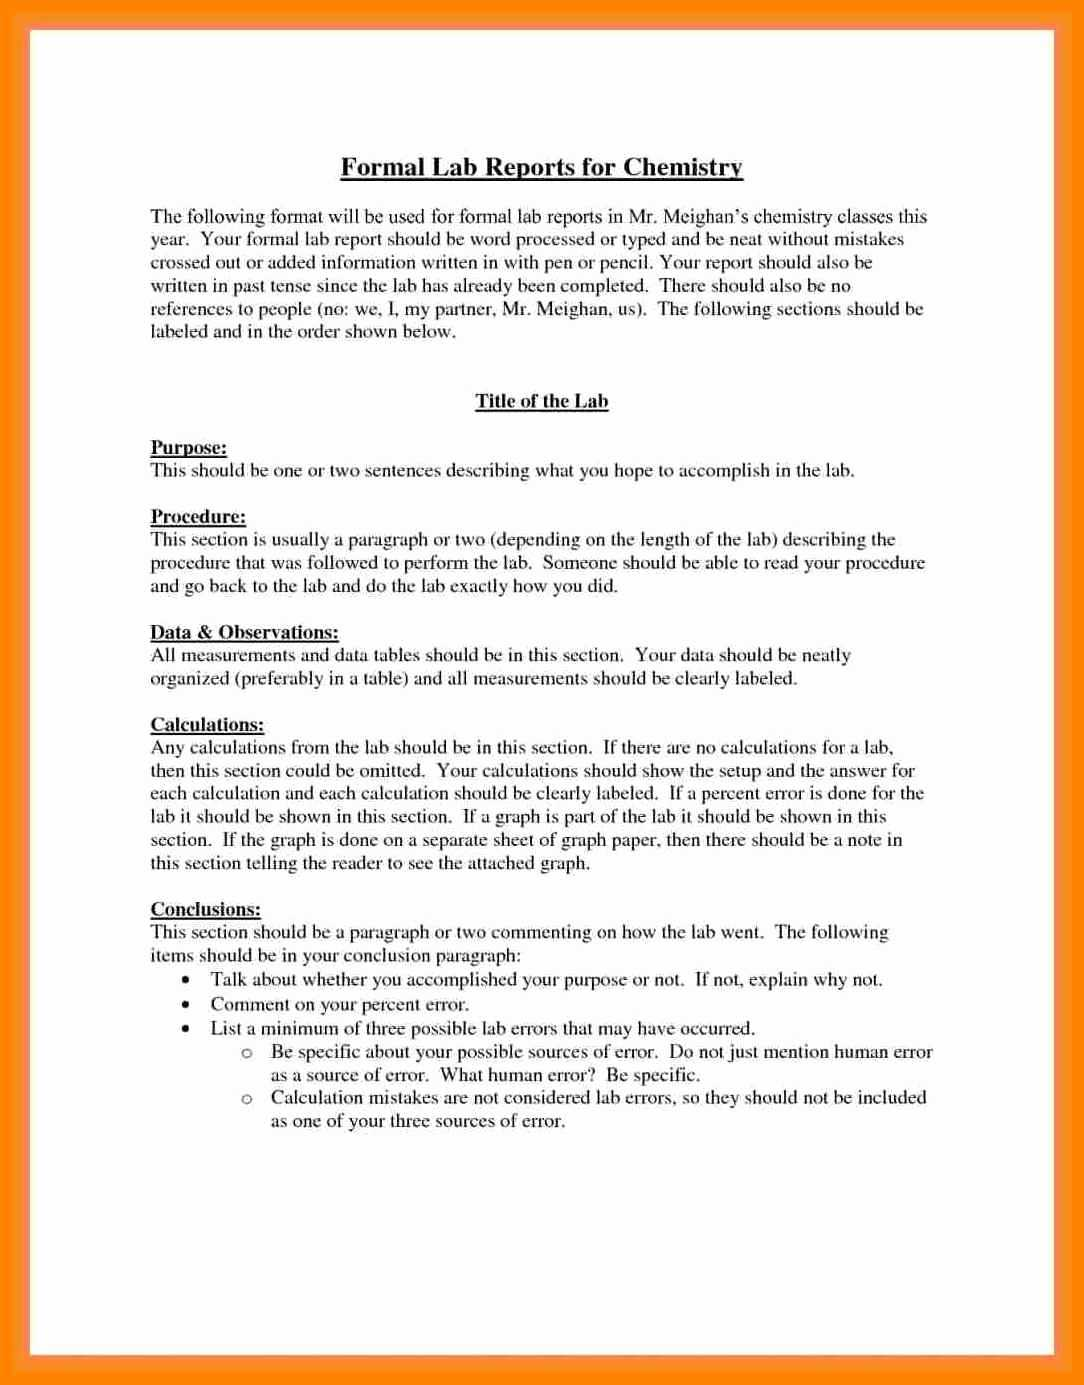 003 Formal Lab Report Example Best Write Up Template Of Regarding Formal Lab Report Template